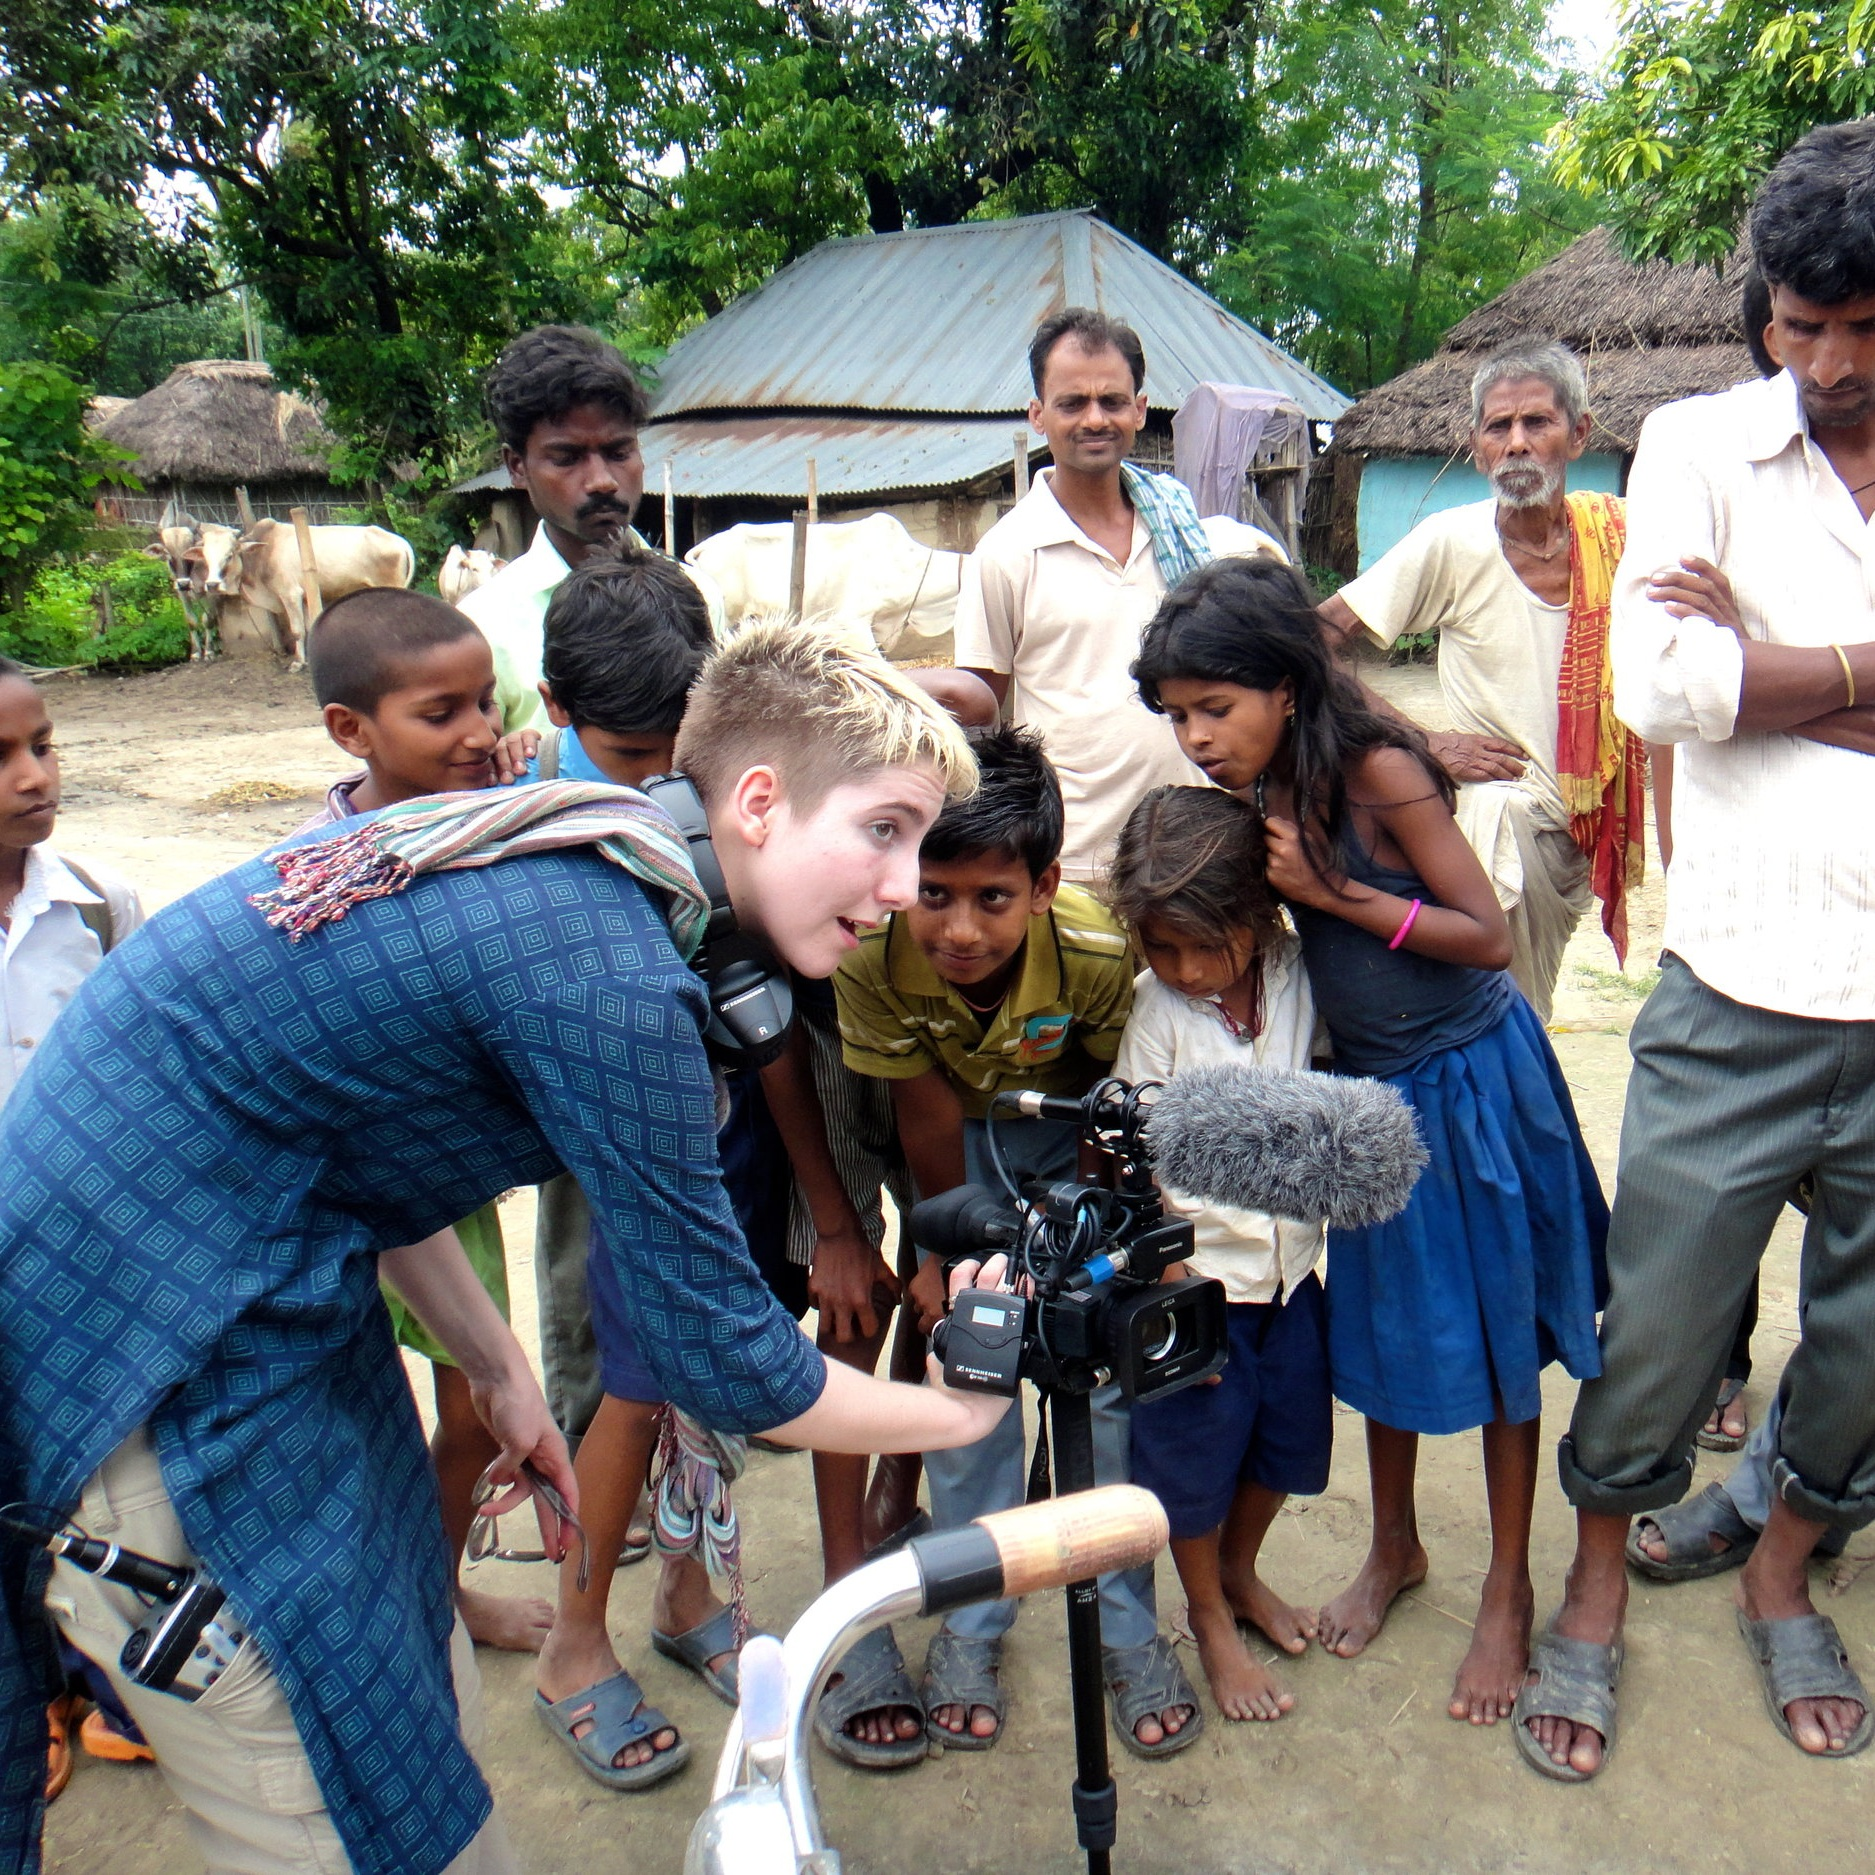 Empower the next generation - to use film & media to highlight the climate crisis.